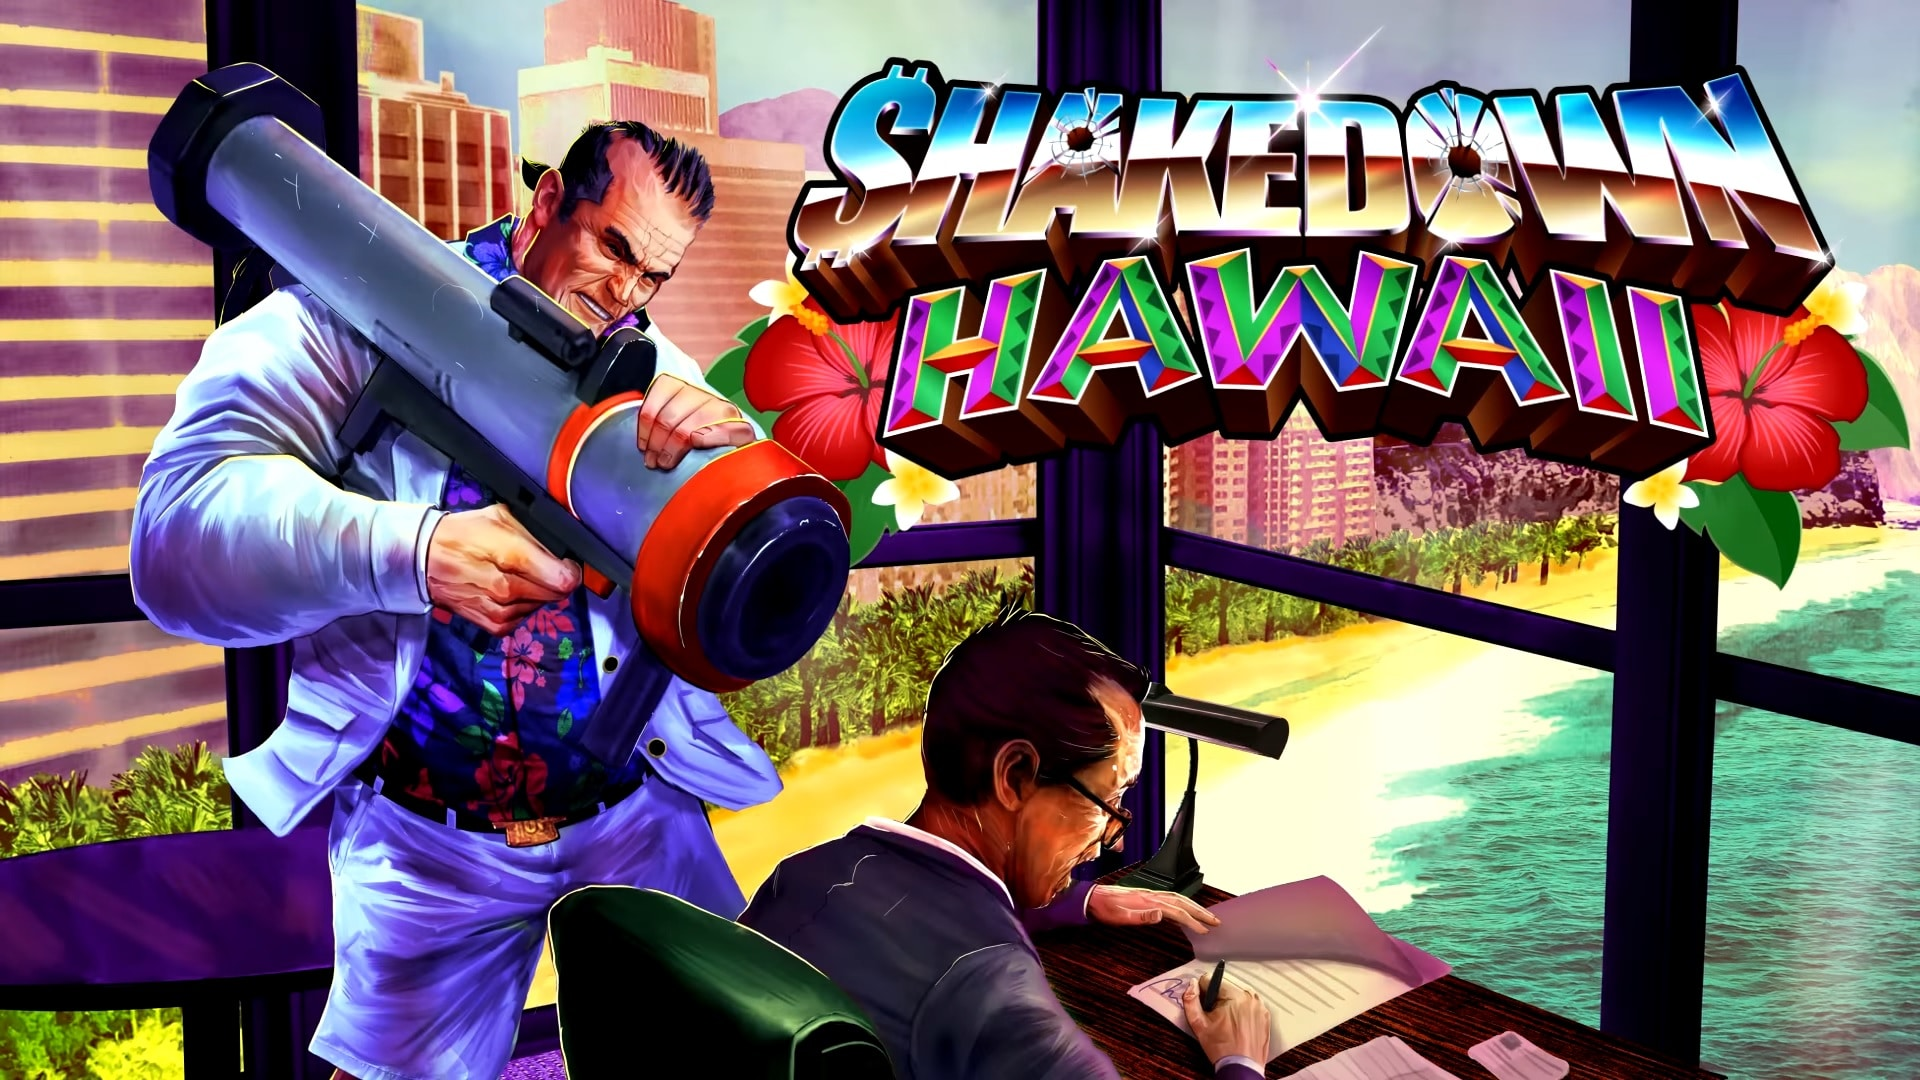 Shakedown Hawaii – Get to the mission trailer